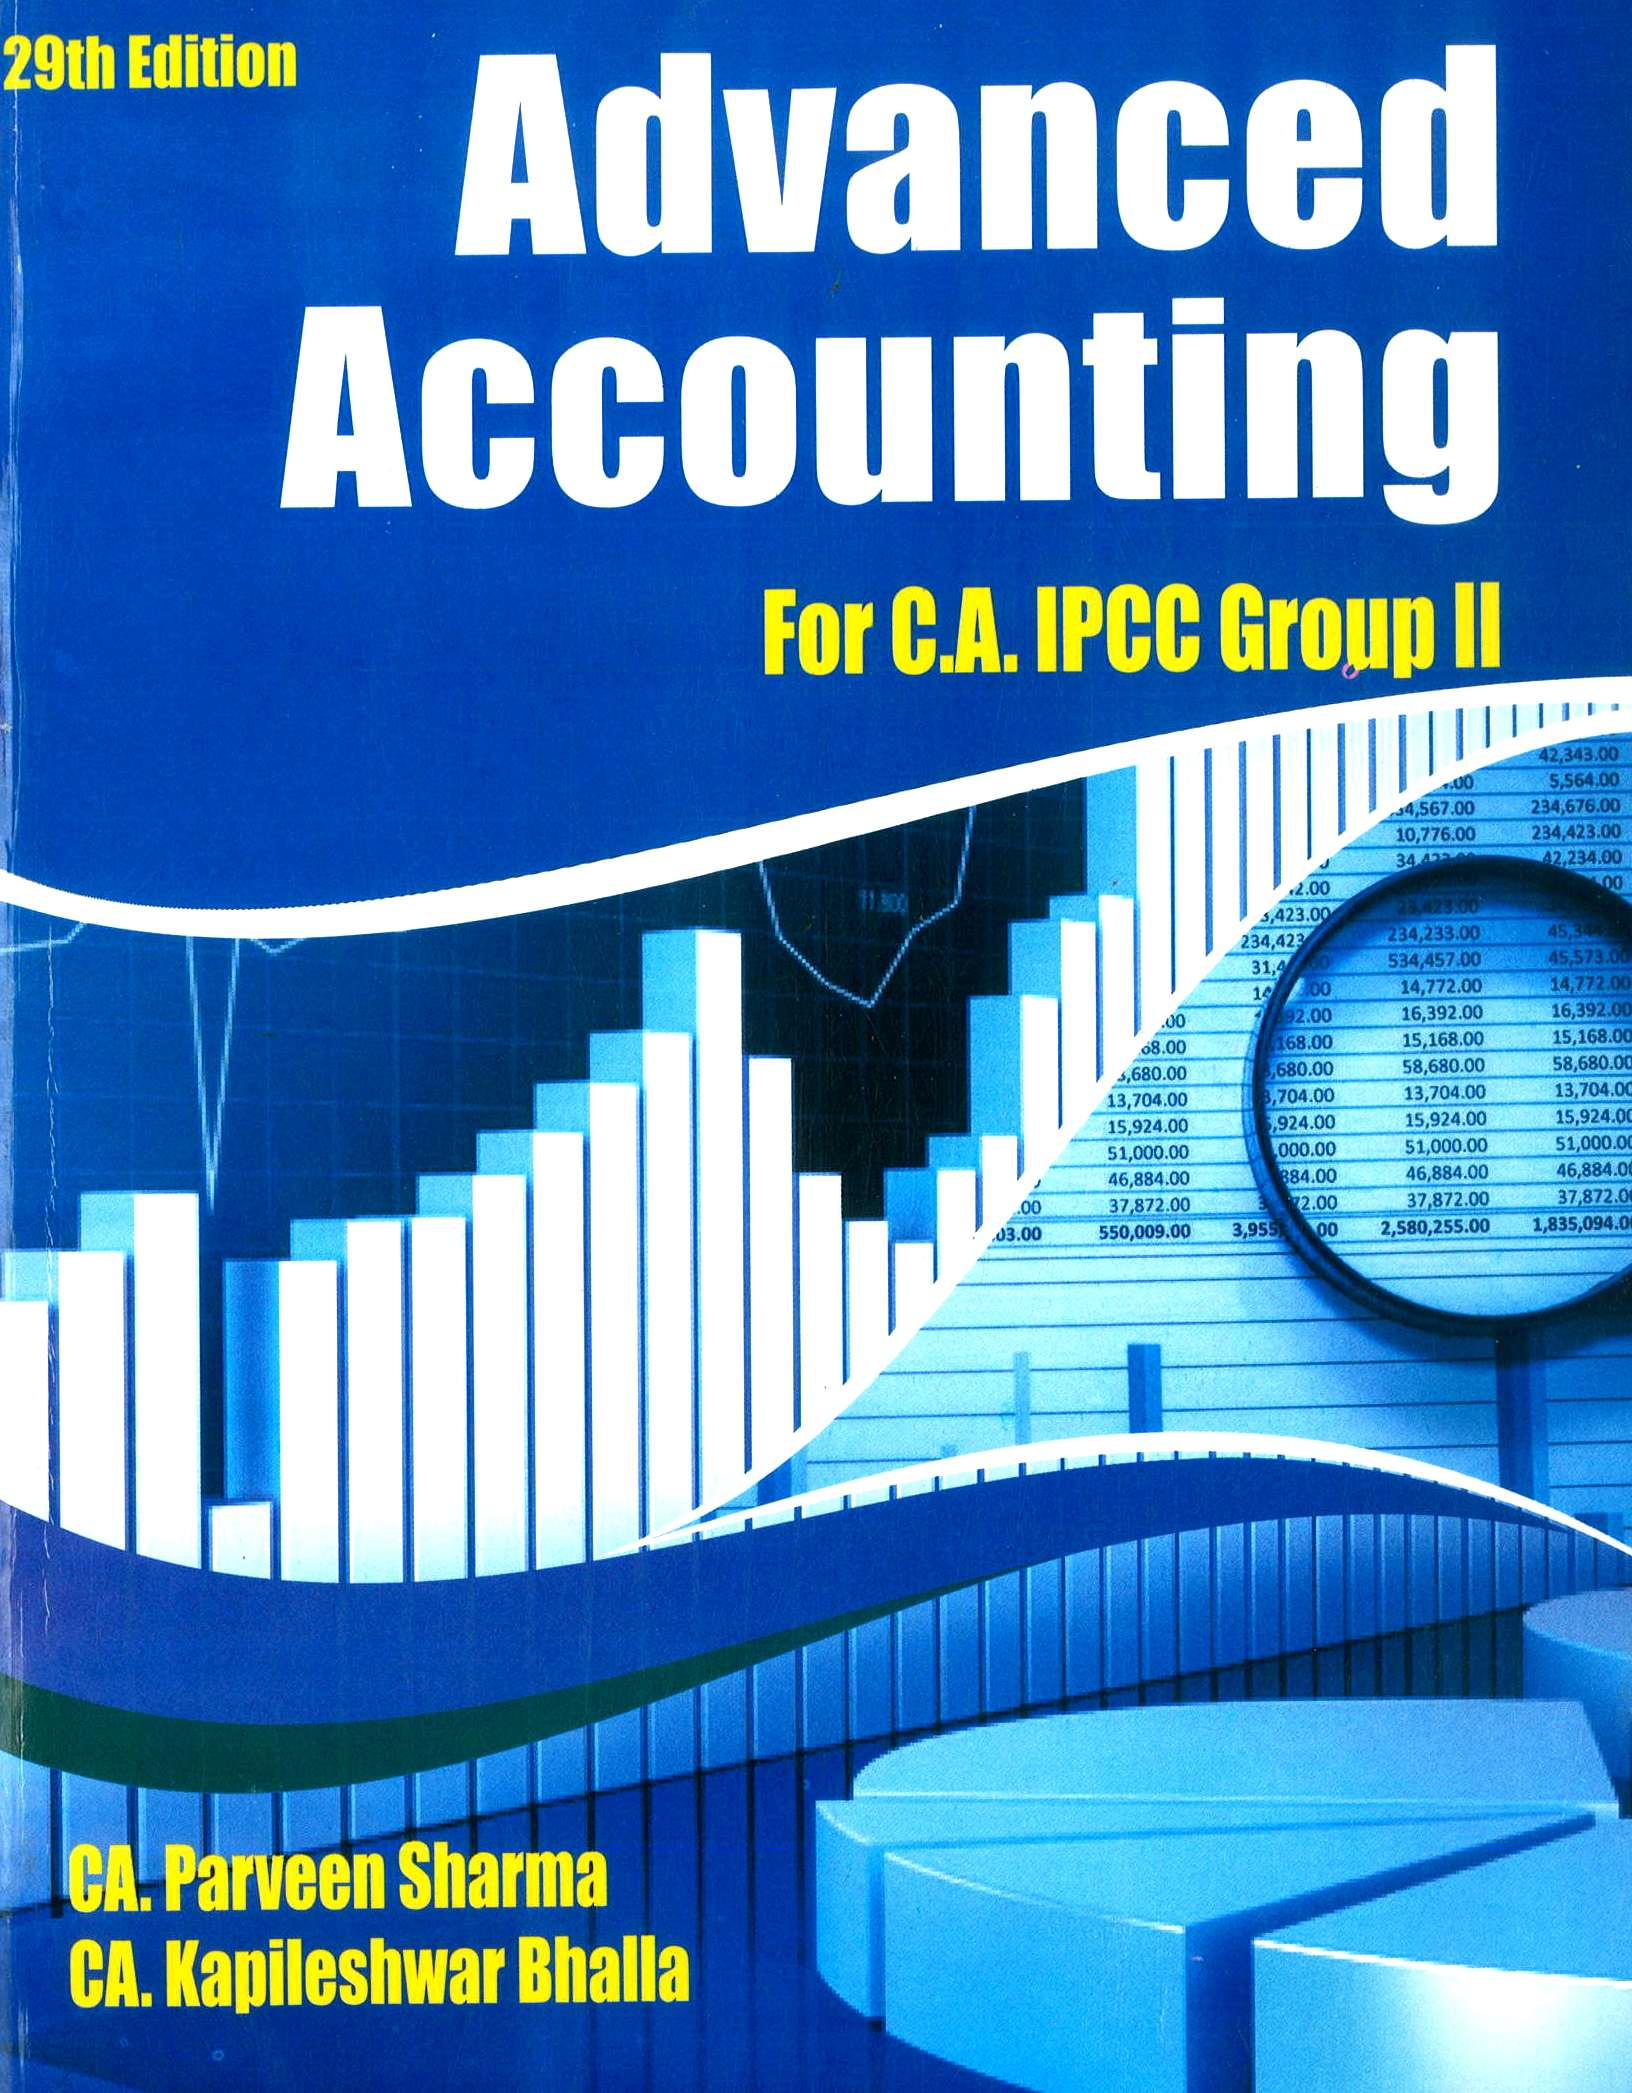 Pooja Law House Advanced Accounting including Accounting Standards for Nov 2018 (Old Course) for CA IPCC Group II by CA Parveen Sharma and CA Kapileshwar Bhalla (Pooja Law House Publishing) Edition 29th, 2018